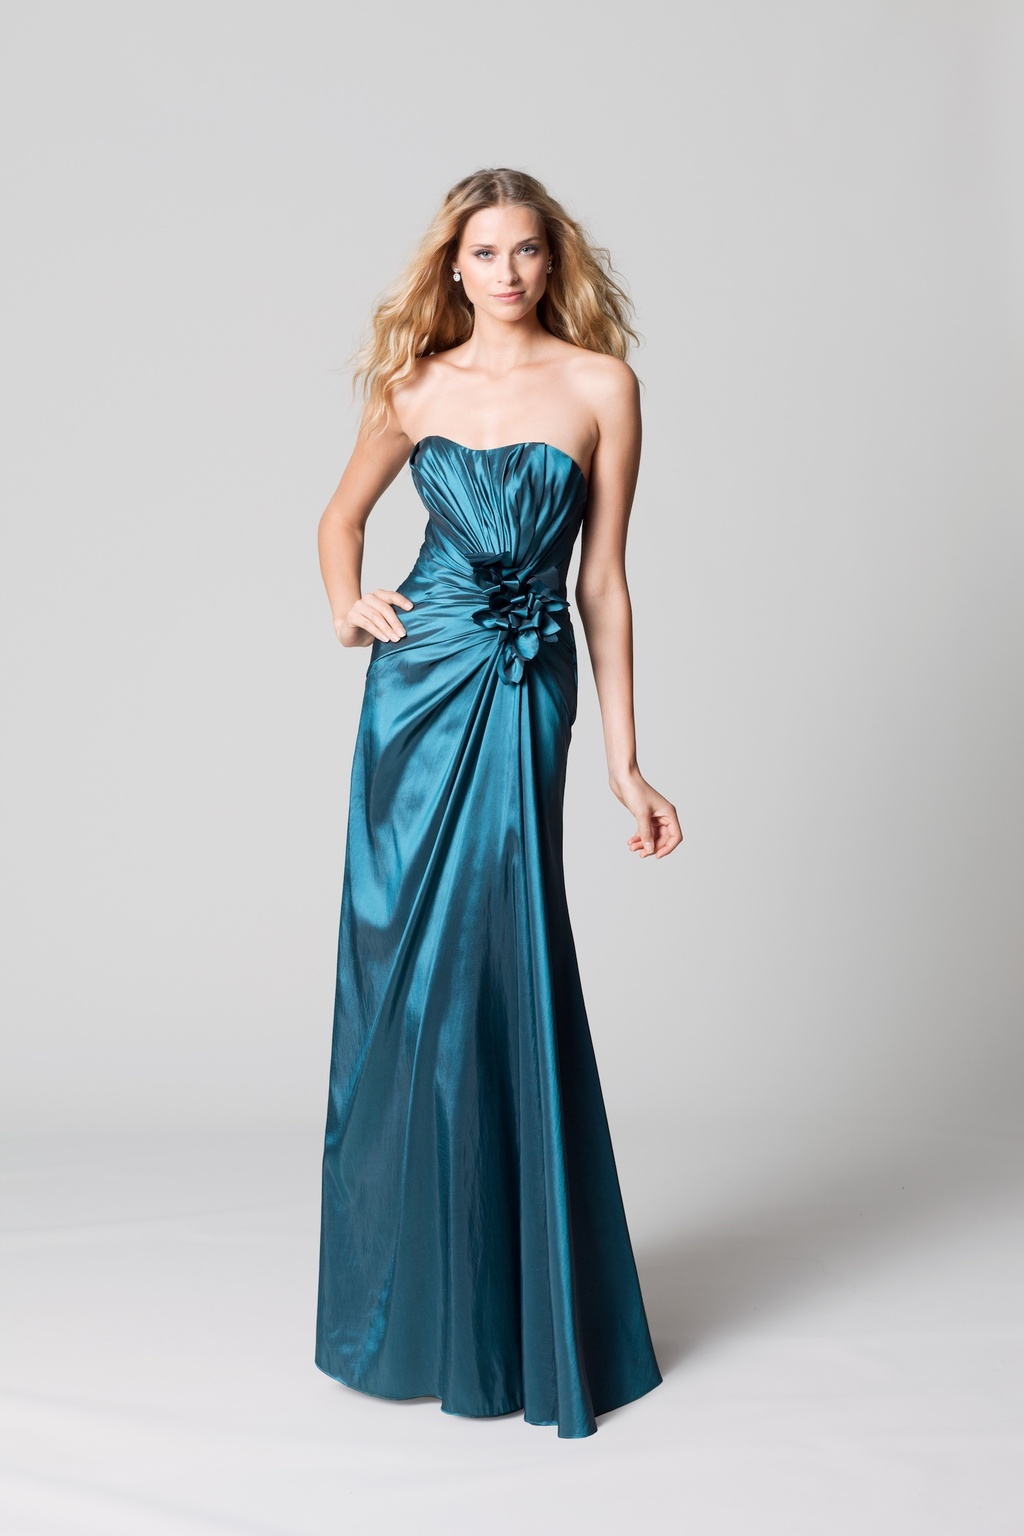 Affordable-bridesmaids-dresses-fall-2012-wtoo-by-watters-bridal-party-teal-satin-long.full